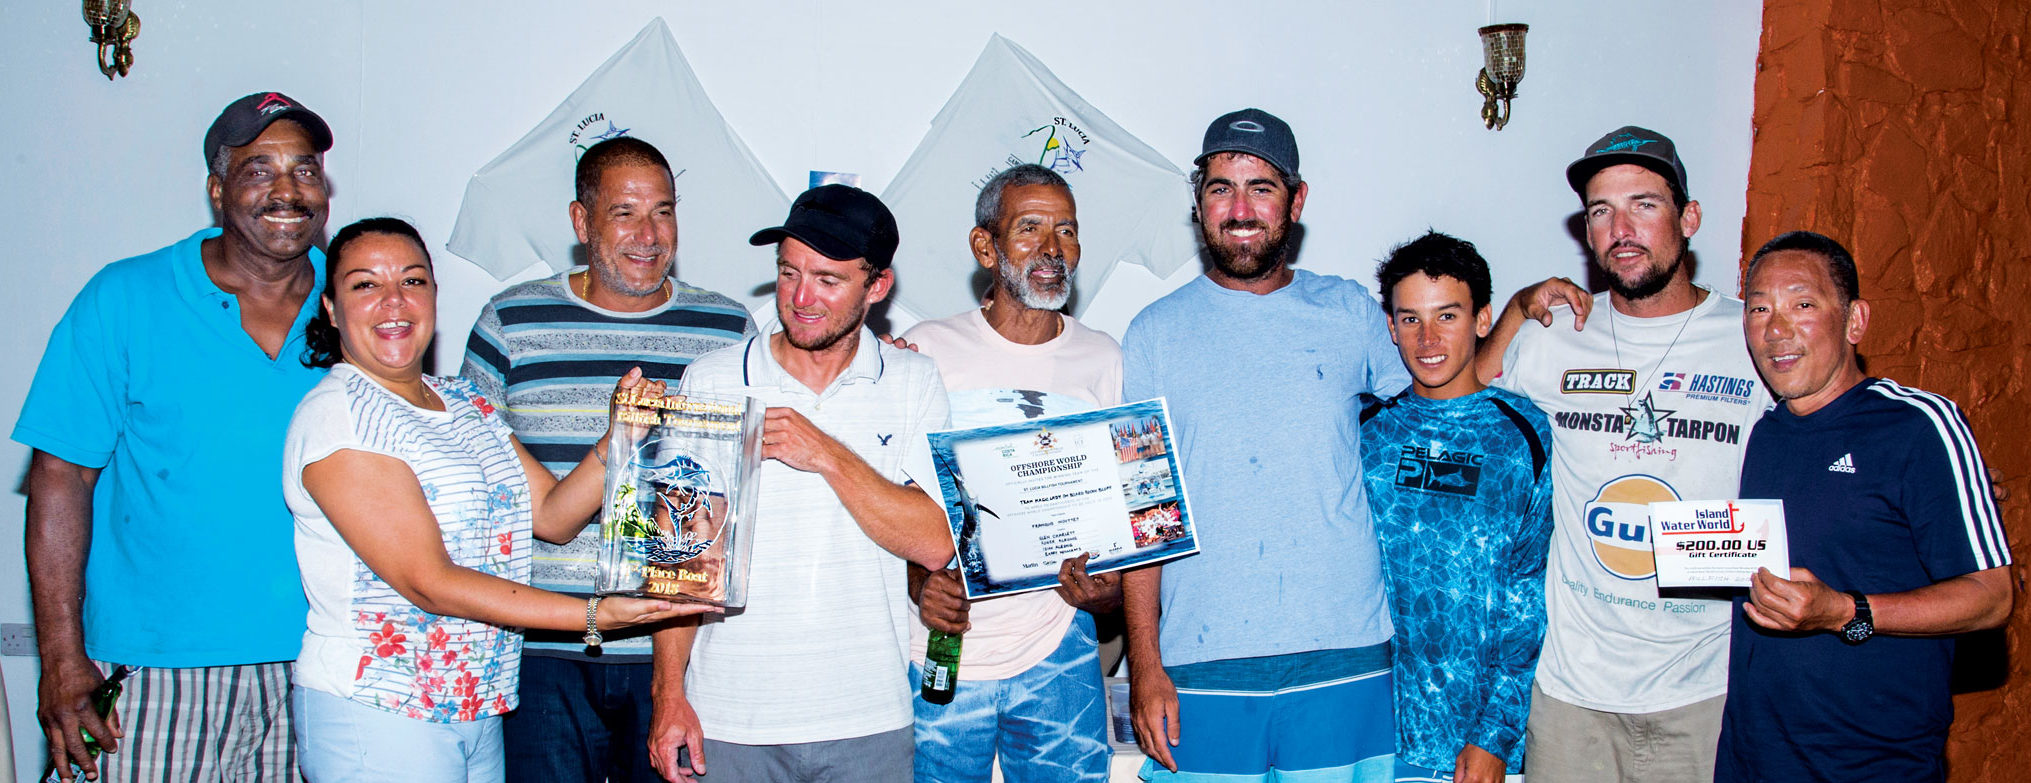 Team Magic Lady have won four major Caribbean sport fishing tournaments this year